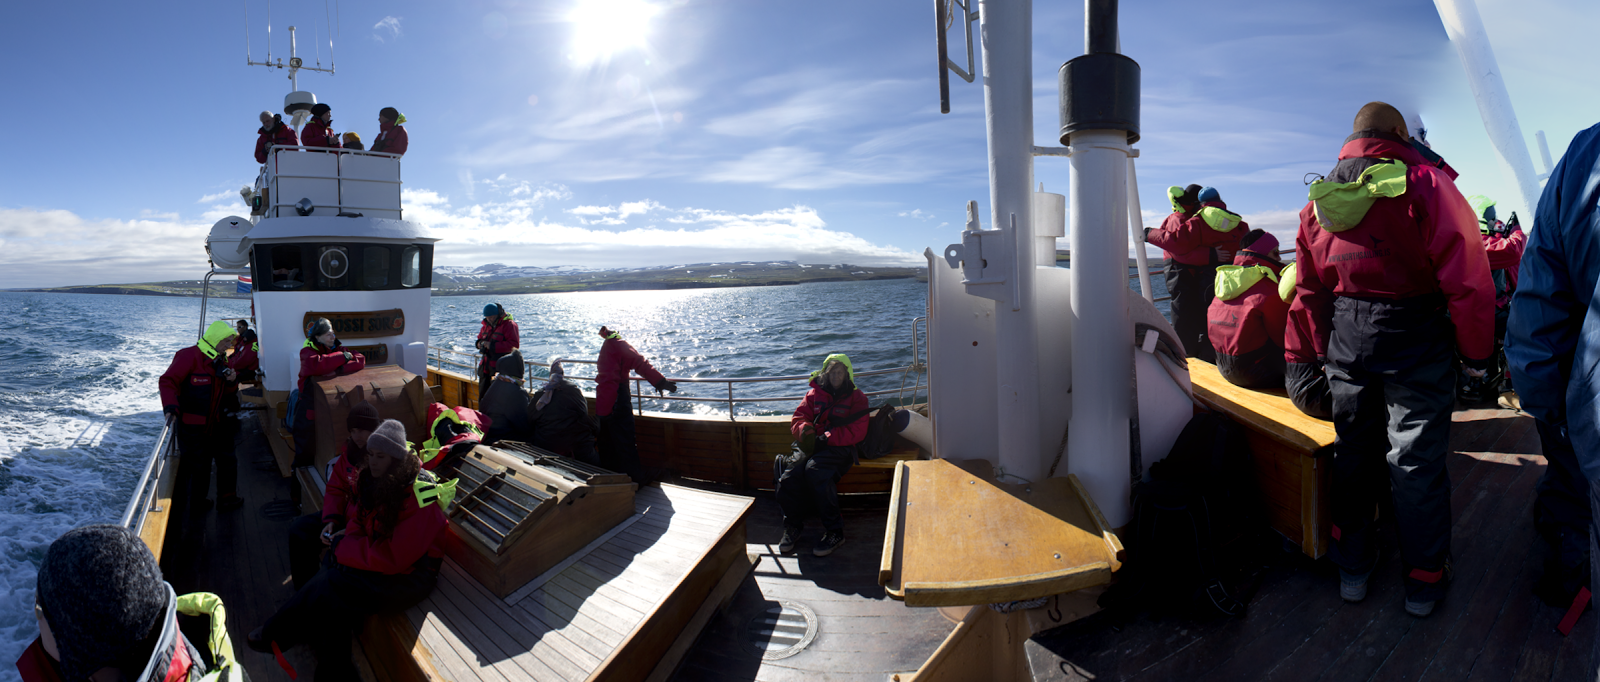 small-panoramas-015-husavik-on_the_boat